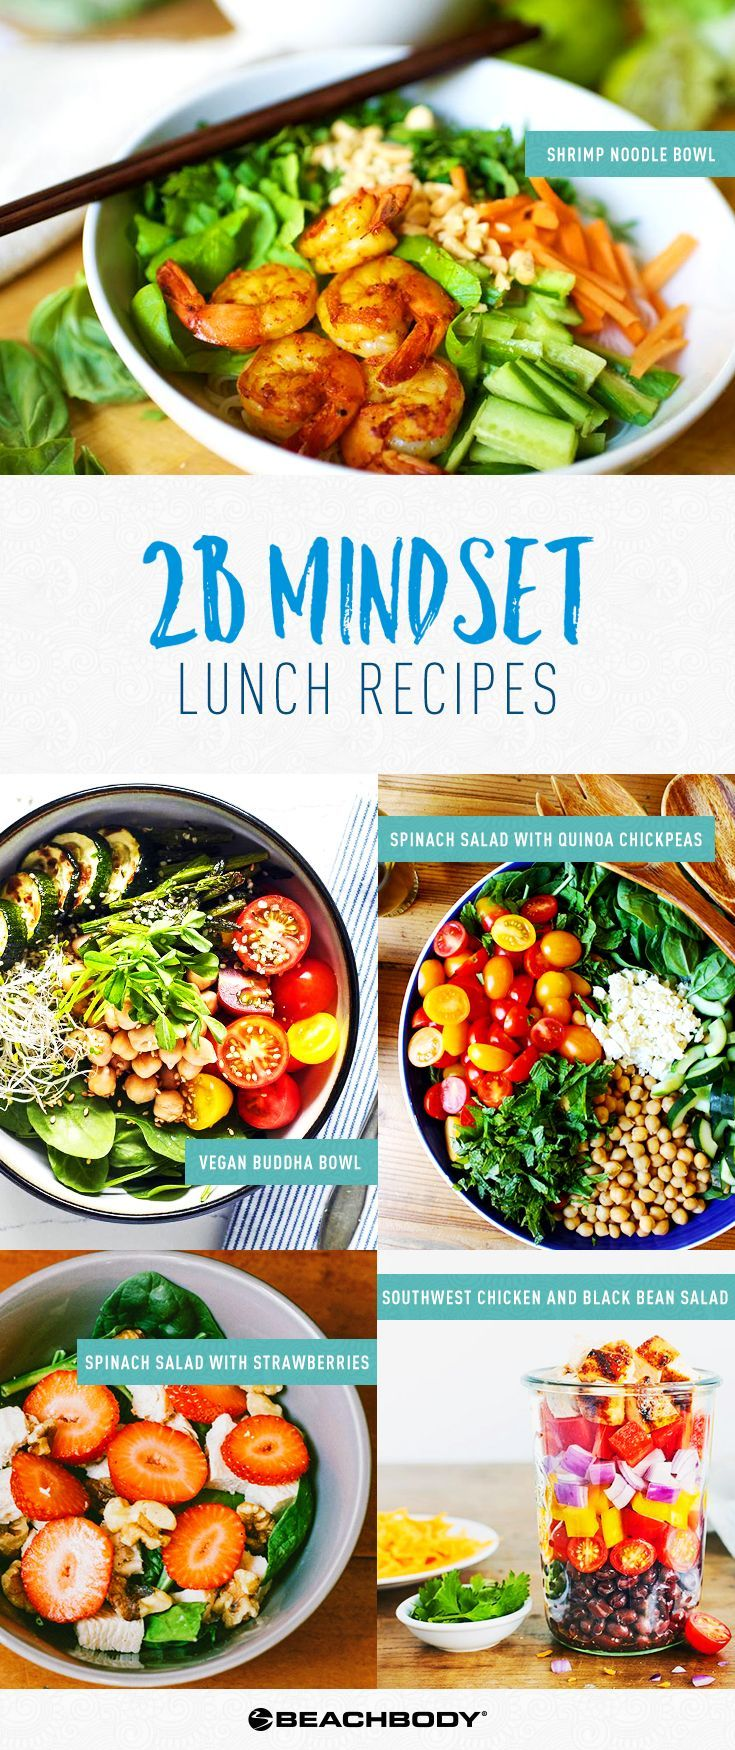 2b mindset lunch recipes lunch recipes food recipes